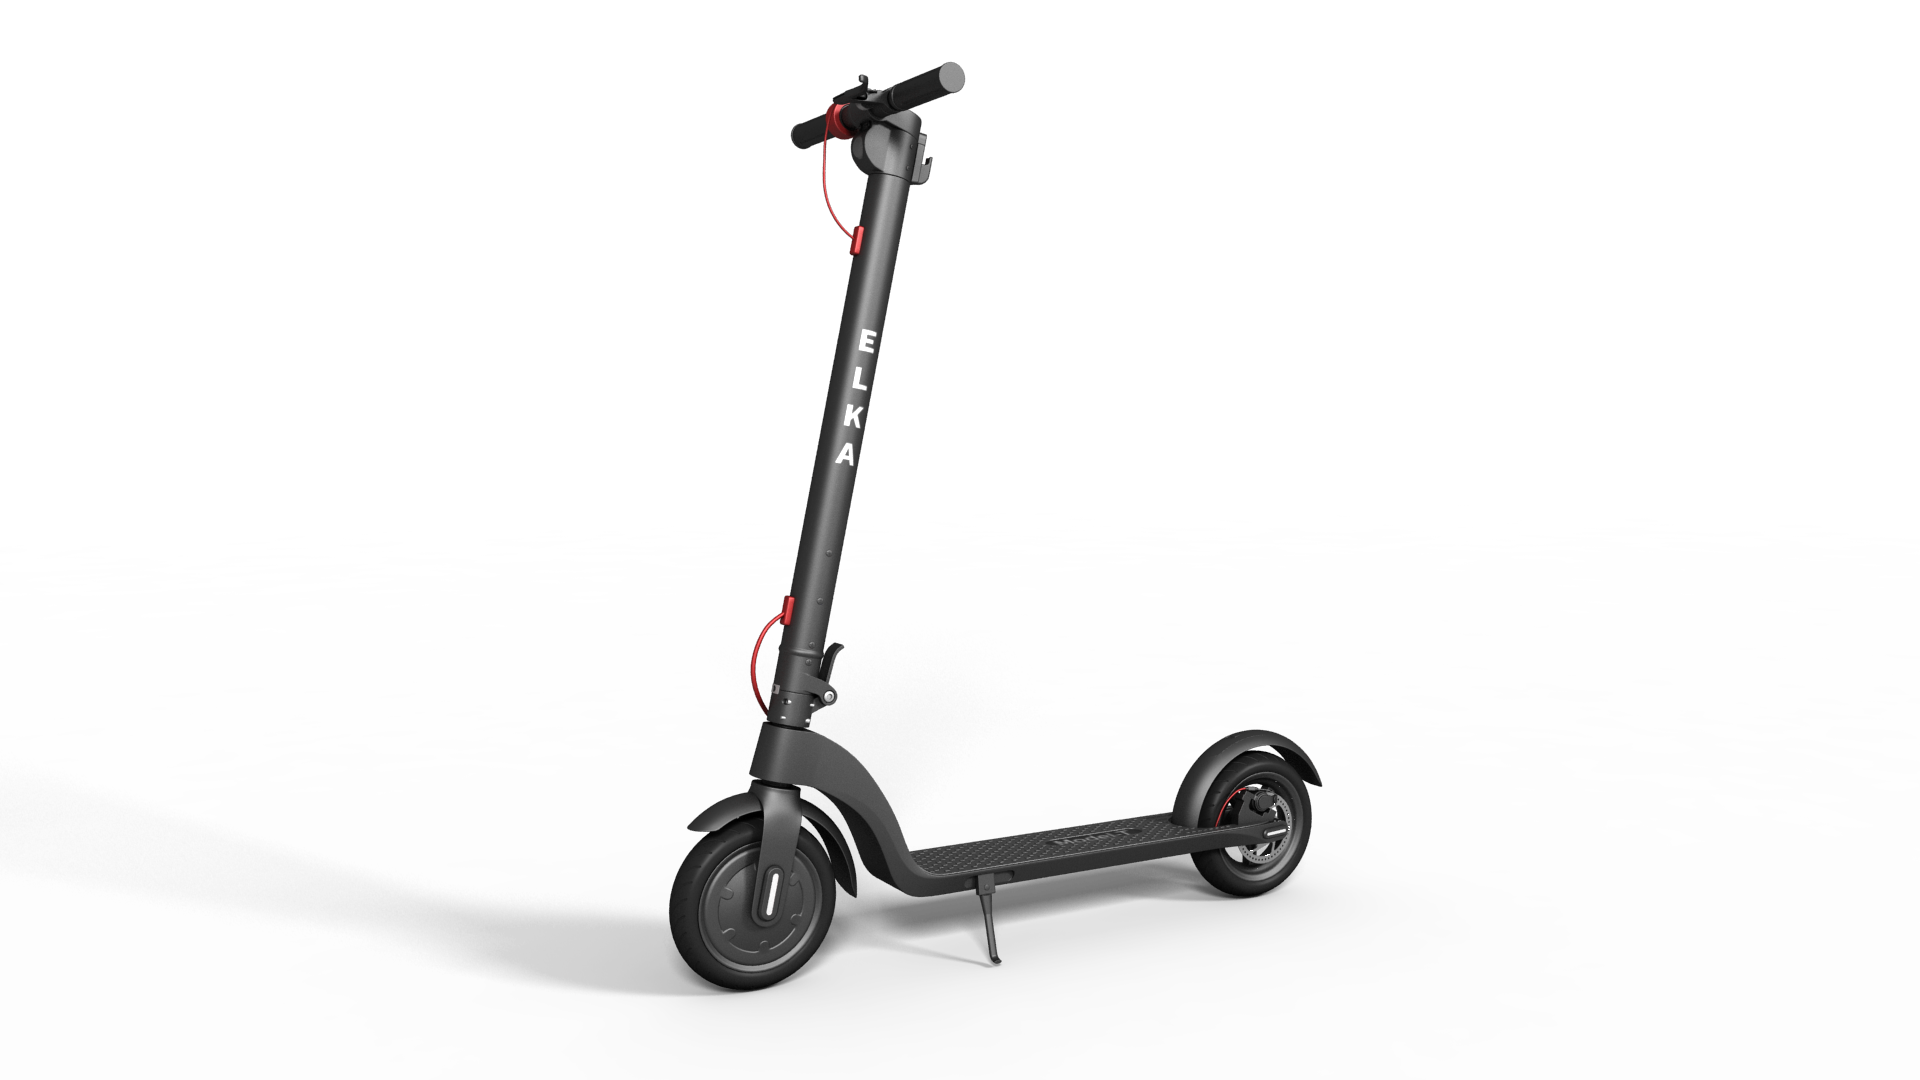 Scooter_Renders.0004.png